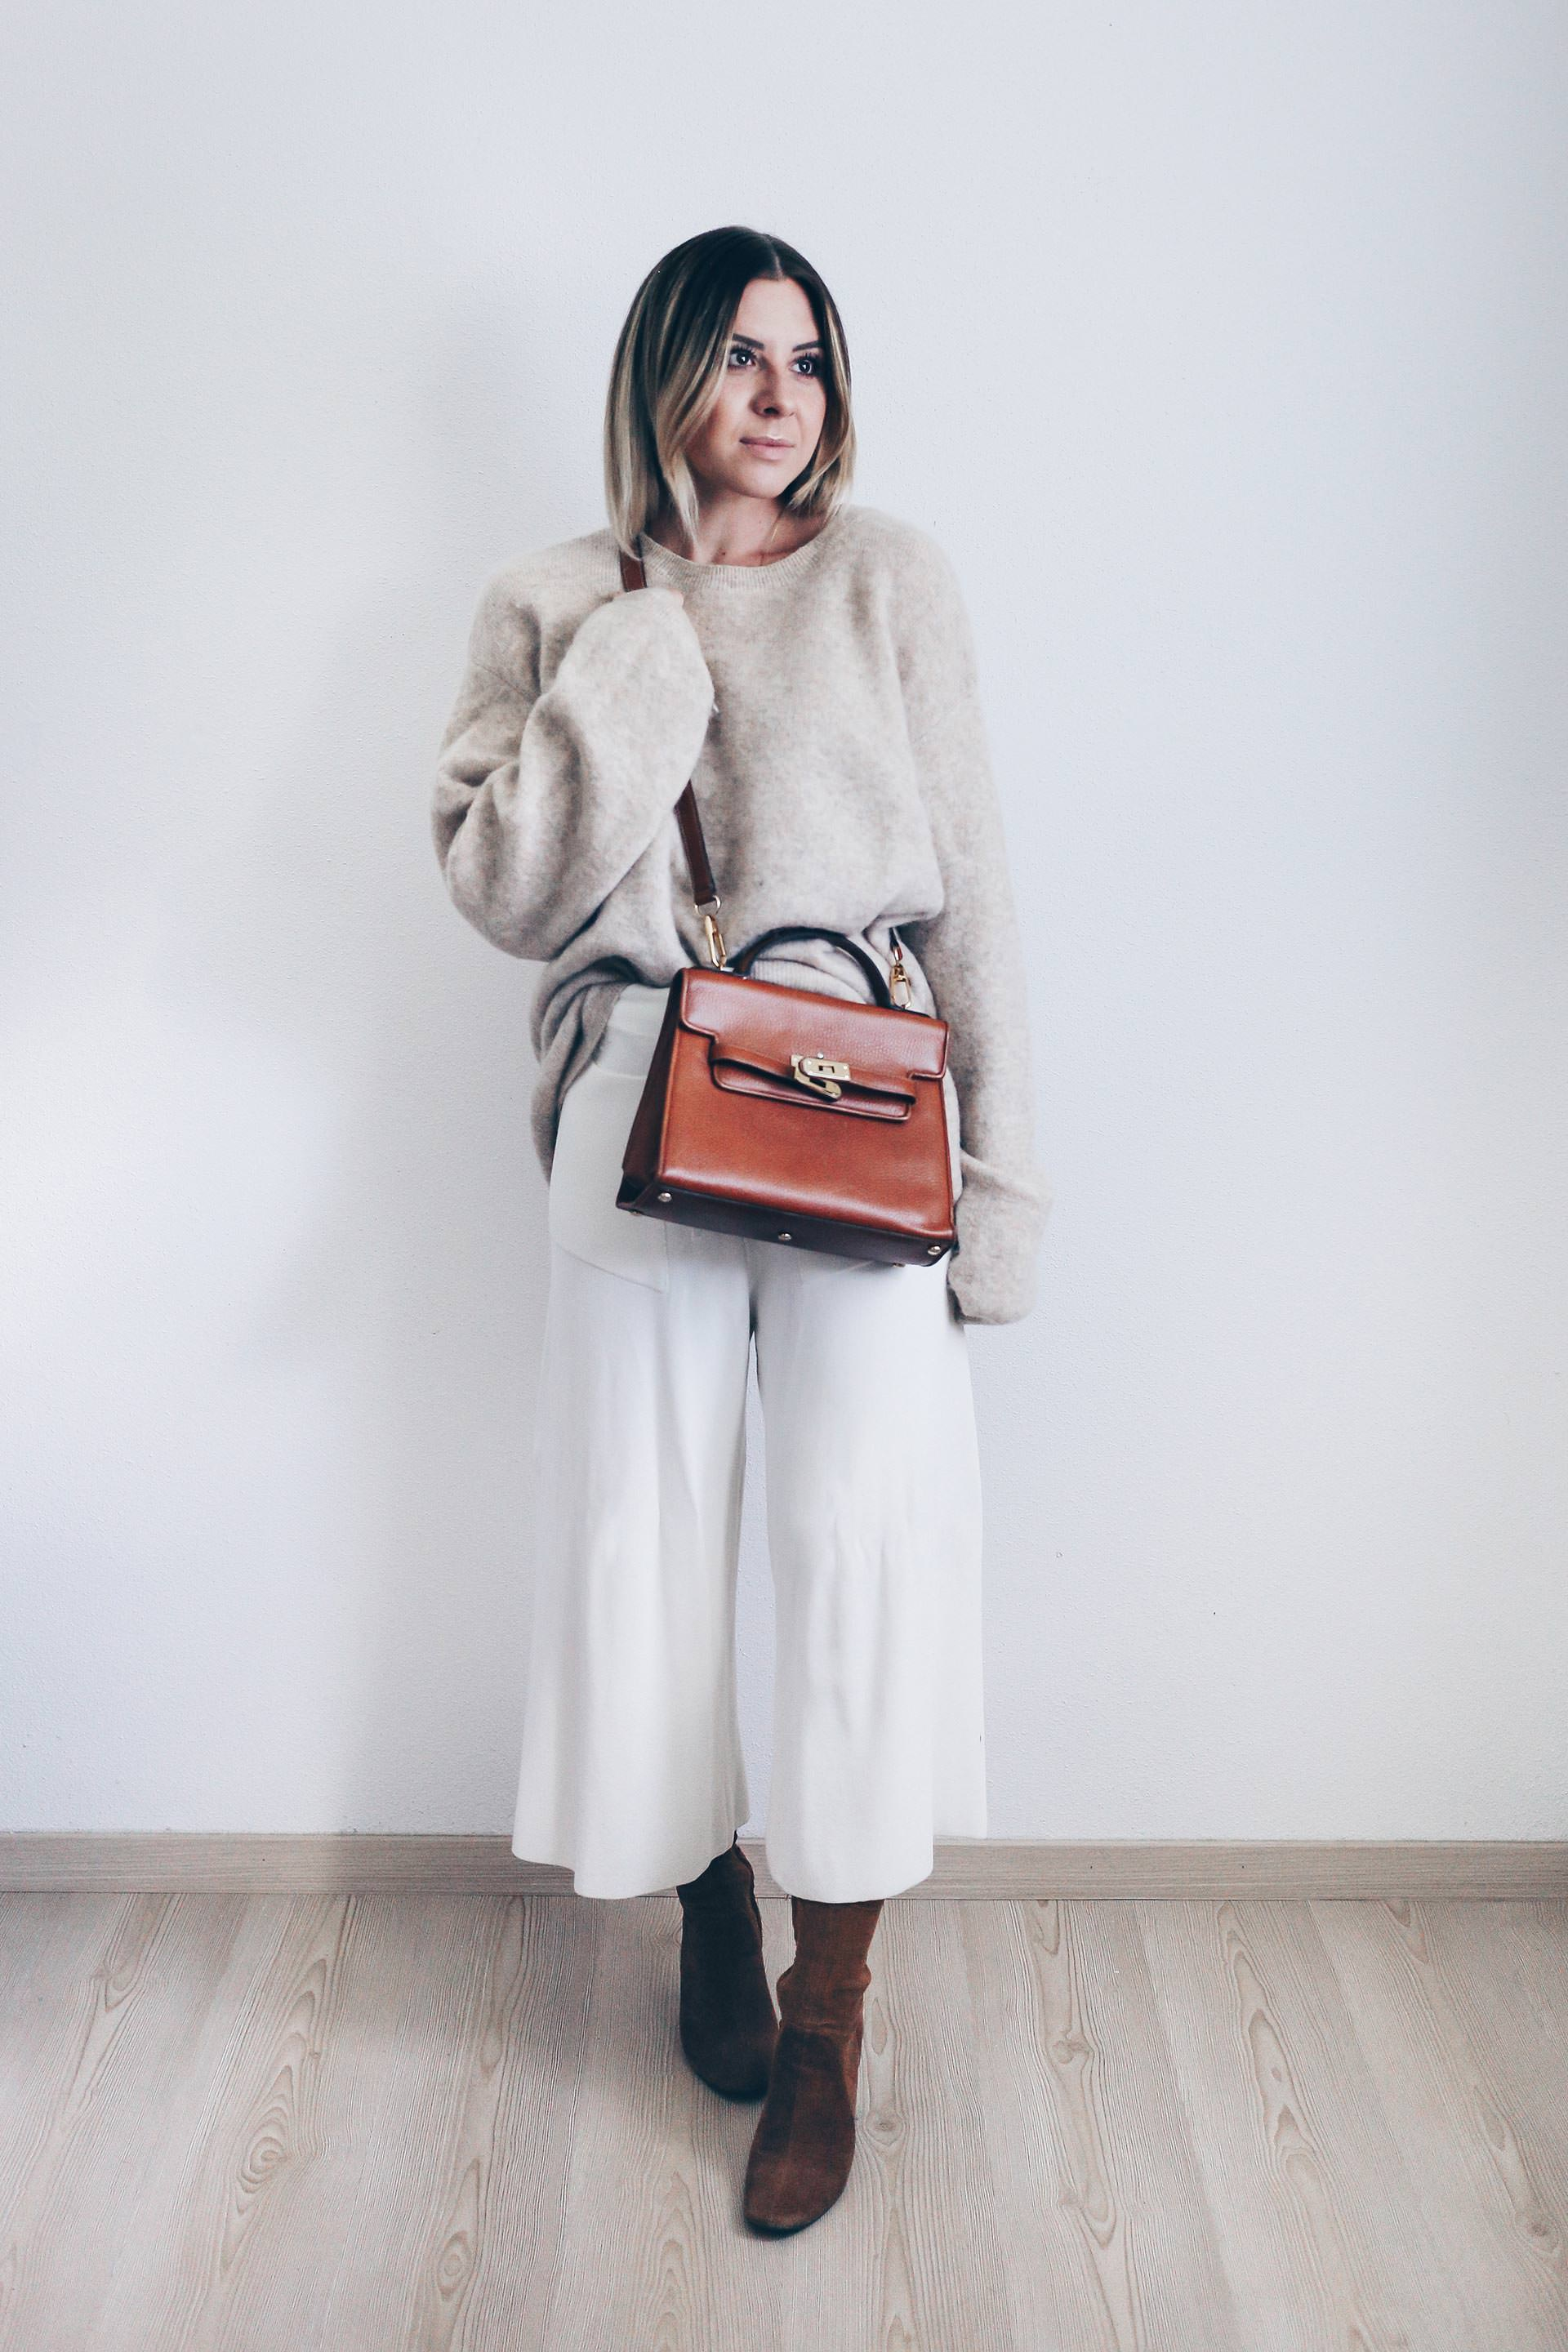 Herbst Trendfarben 2017, Farbtrends, Modetrends, Outfit Ideen, Herbst Outfits, Outfit Inspiration, Fashion Blog, Modeblog, Outfit Blog, Style Blog, Lookbook, www.whoismocca.com